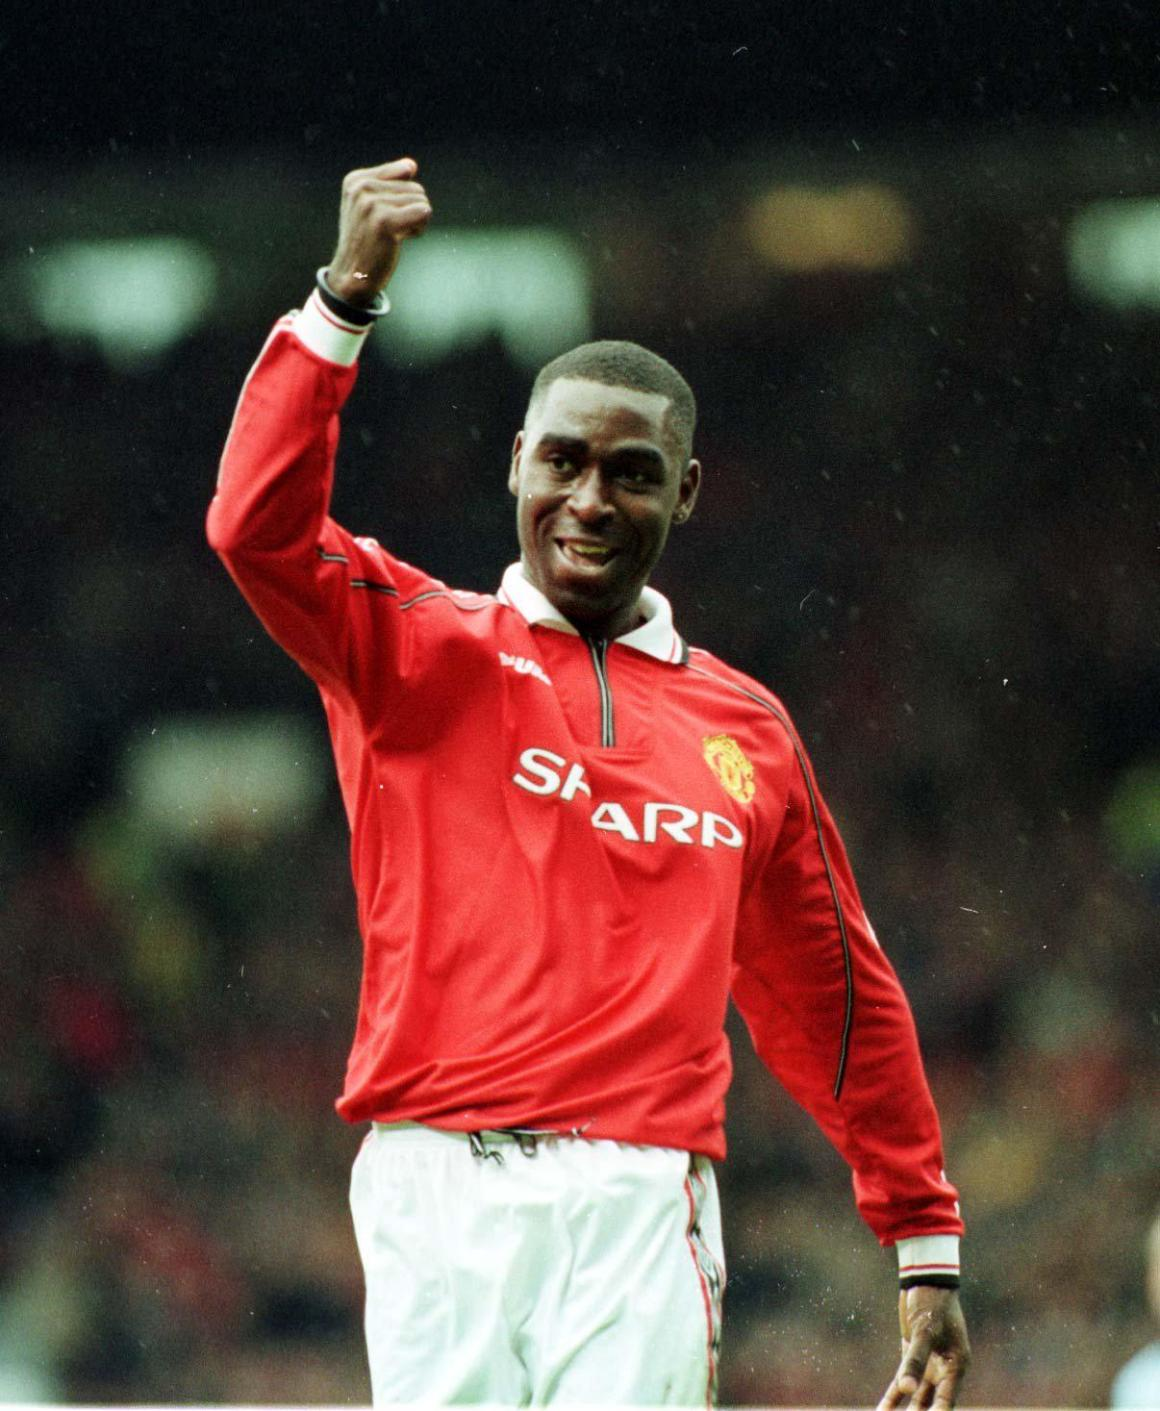 Manchester United legend Andy Cole has organ transplant a year after falling ill from kidney failure